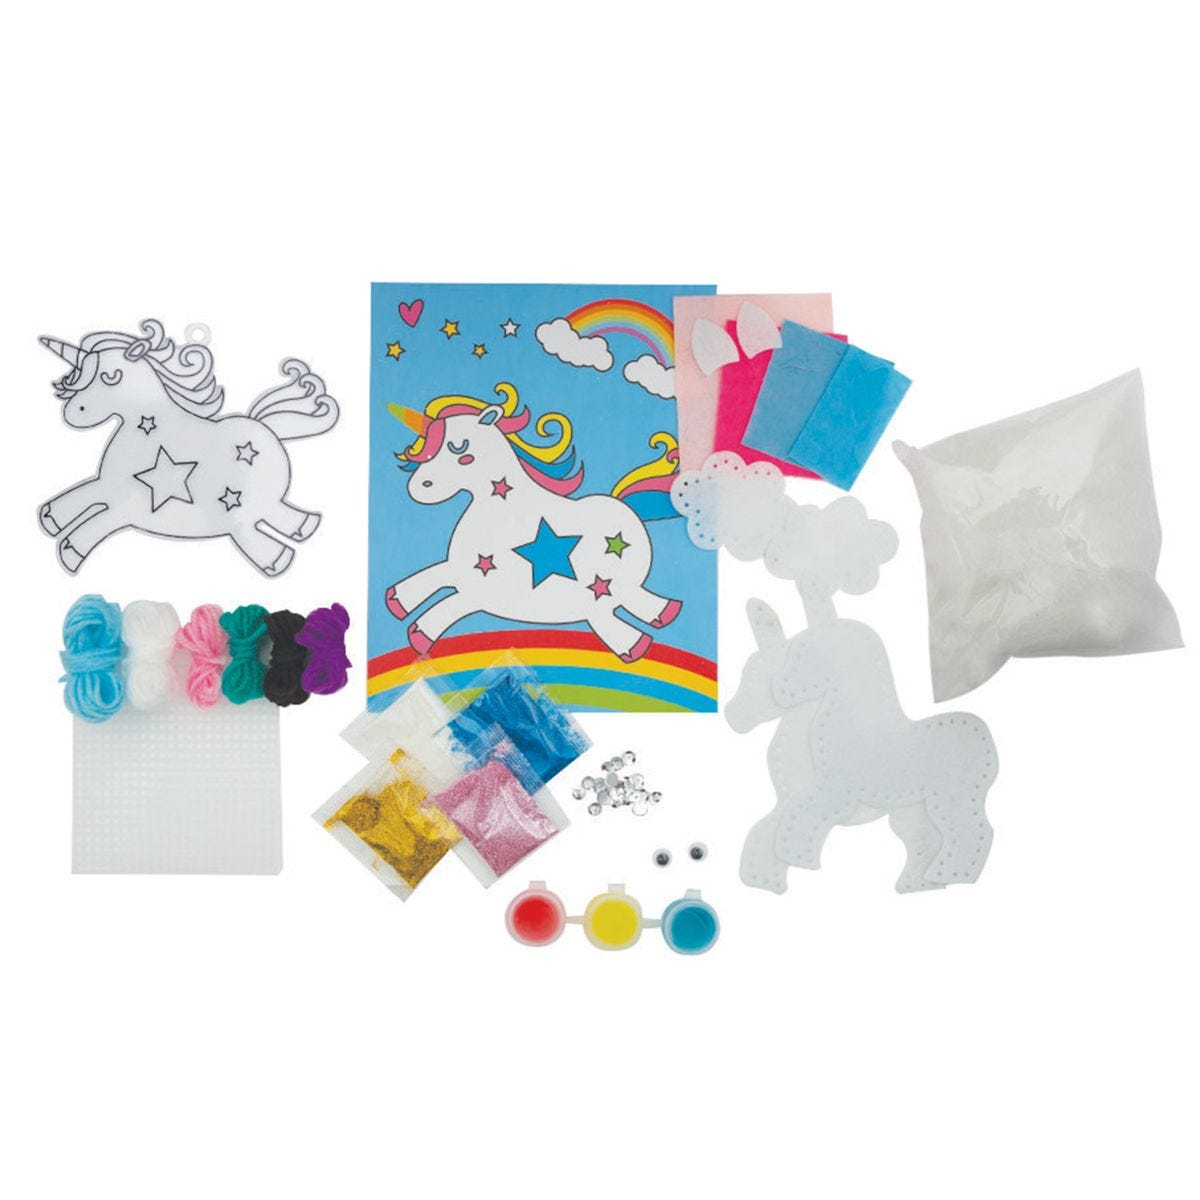 Doodle Make Your Own Magical Hanging Unicorns Kit